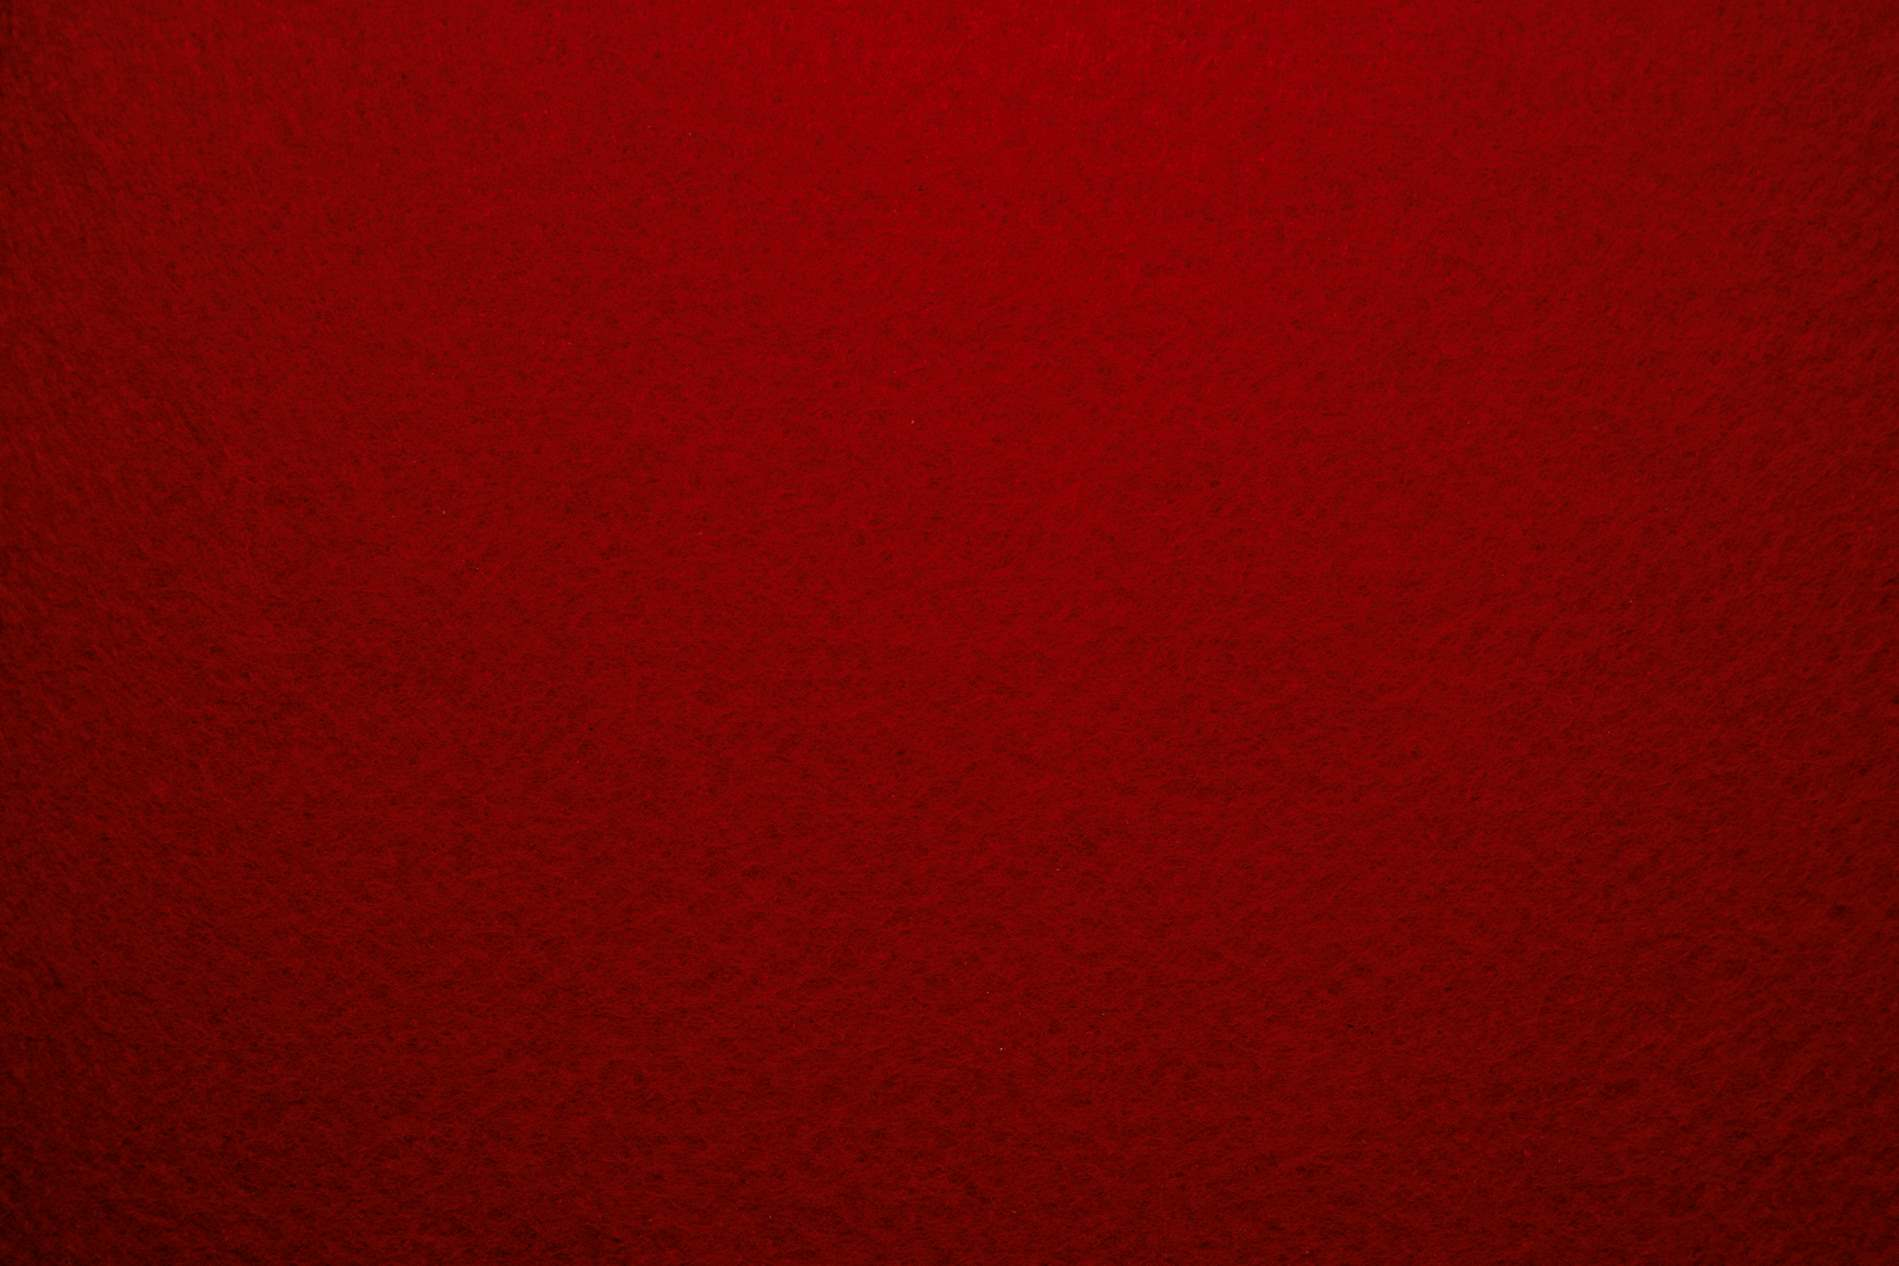 Red Fabric Background Texture